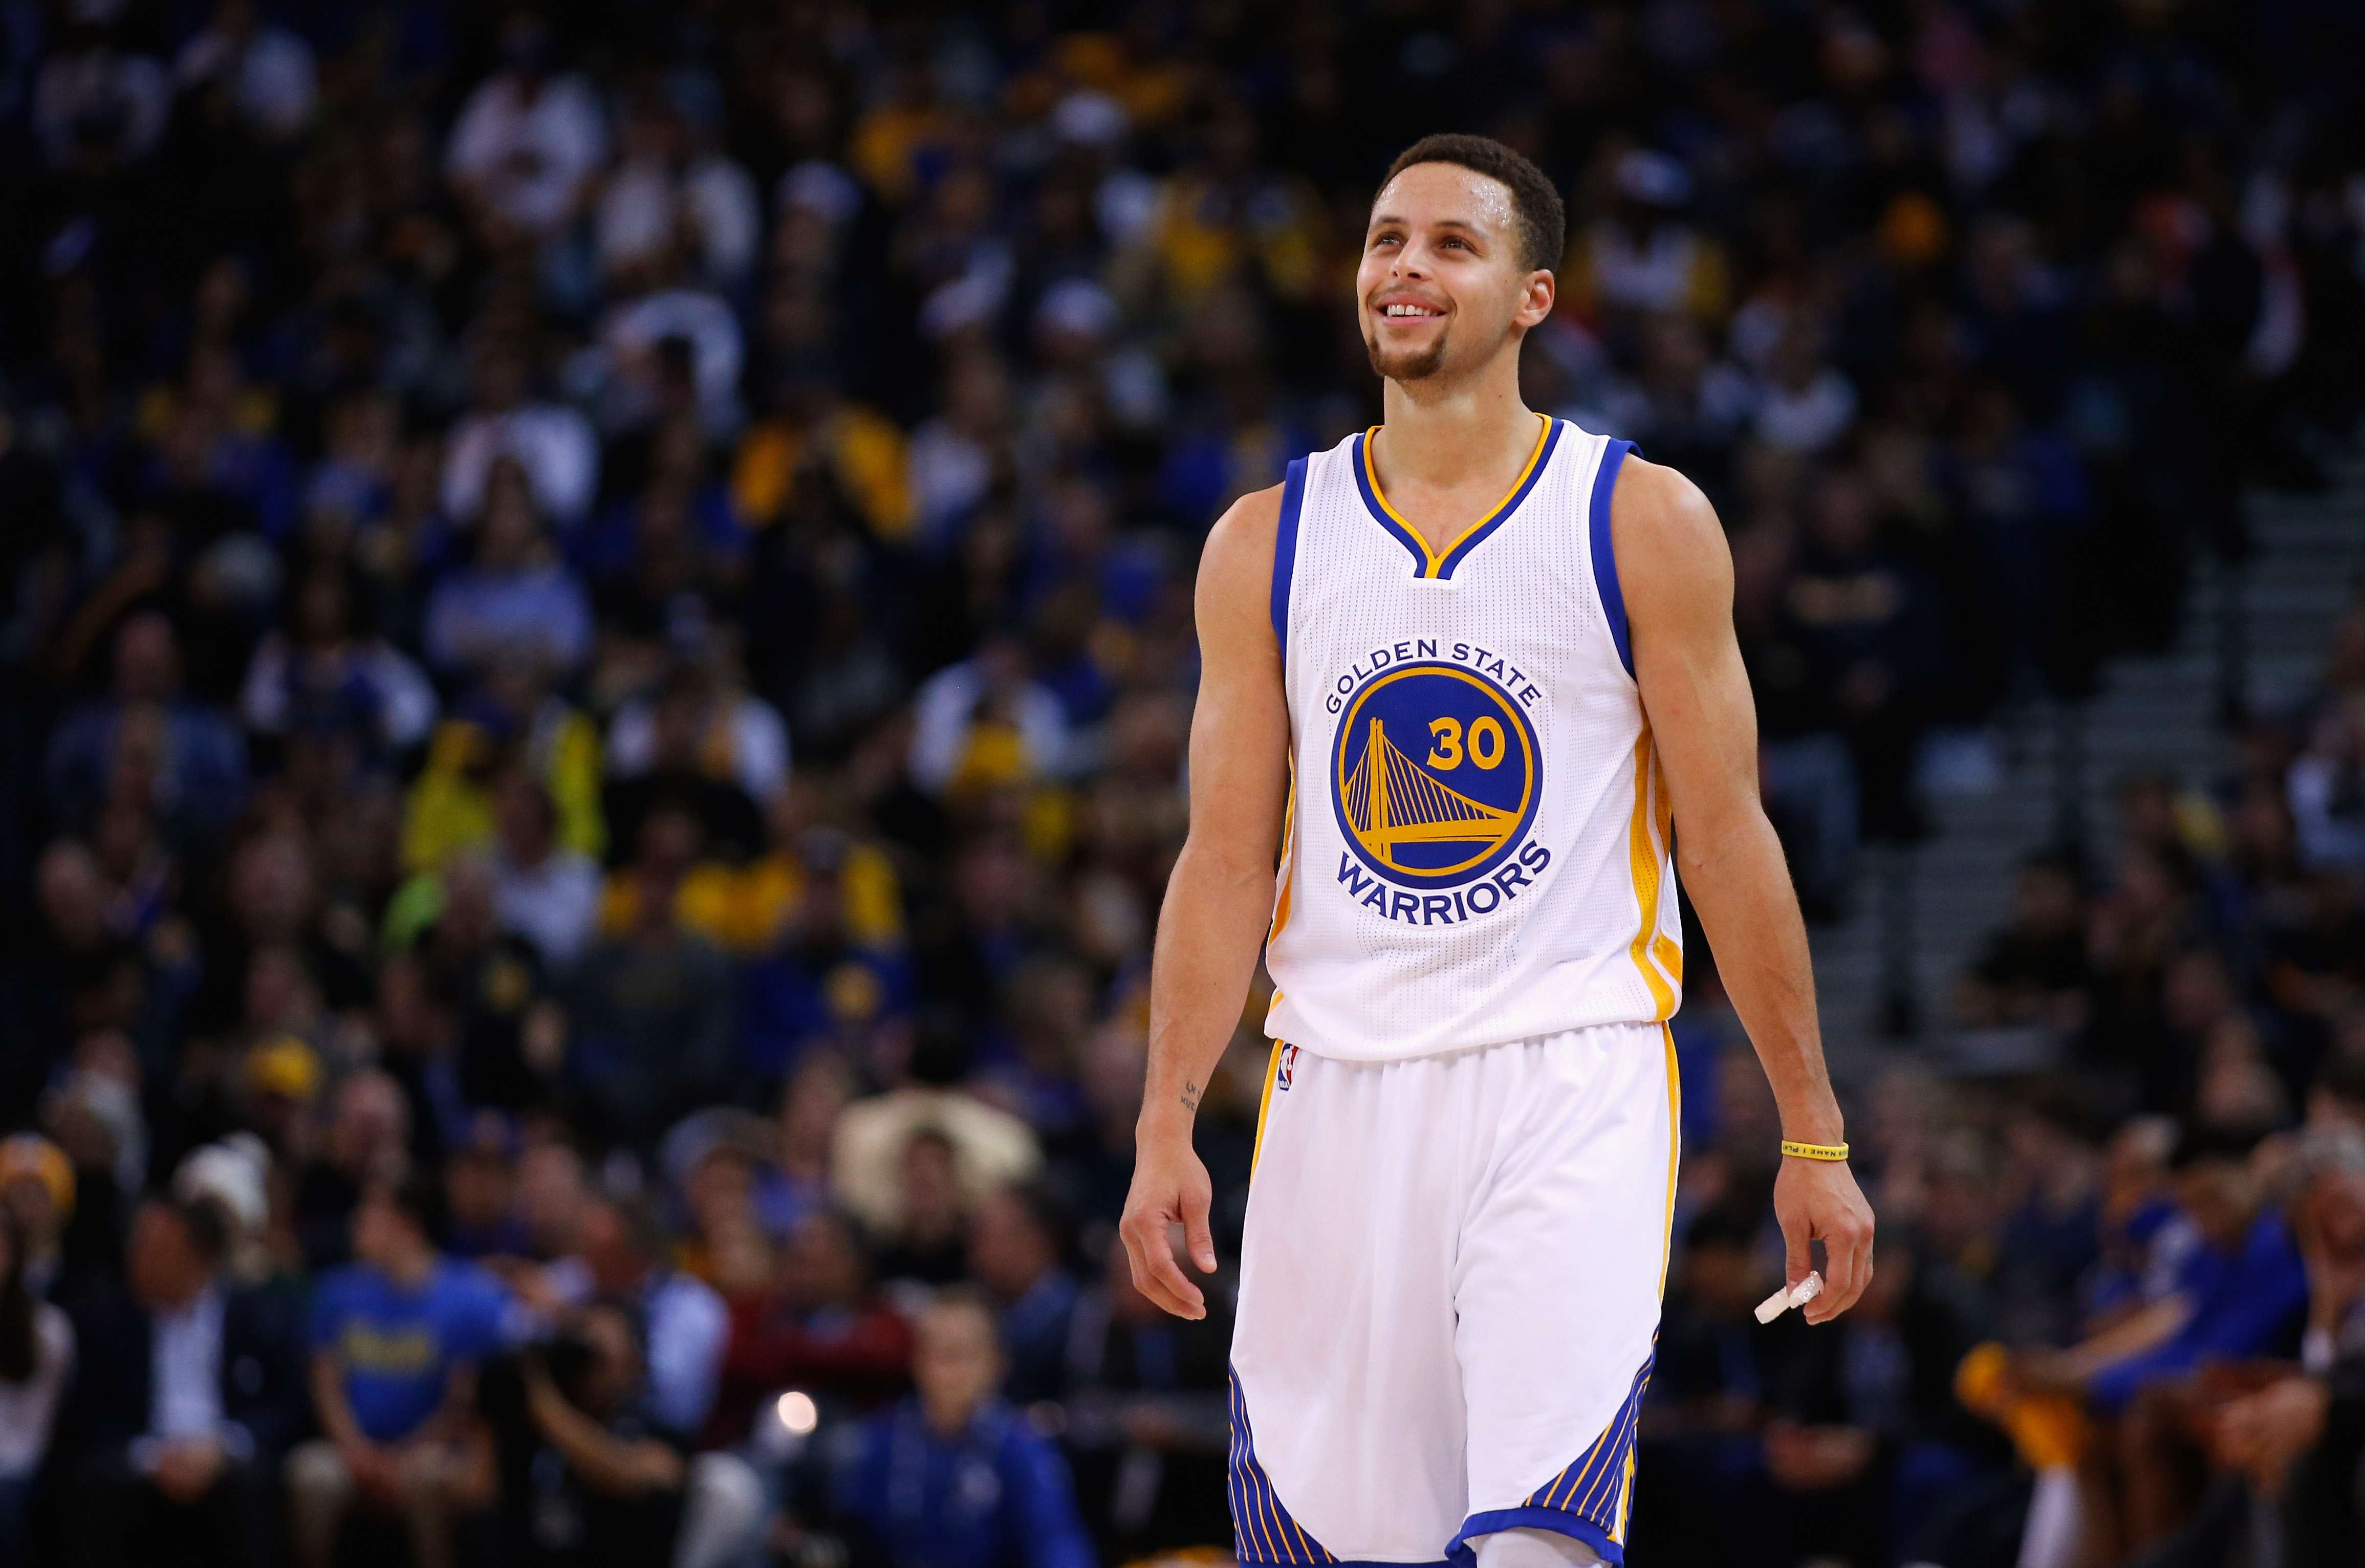 Stephen Curry of the Golden State Warriors plays against the Suns at ORACLE Arena on December 16, 2015 in Oakland, California.